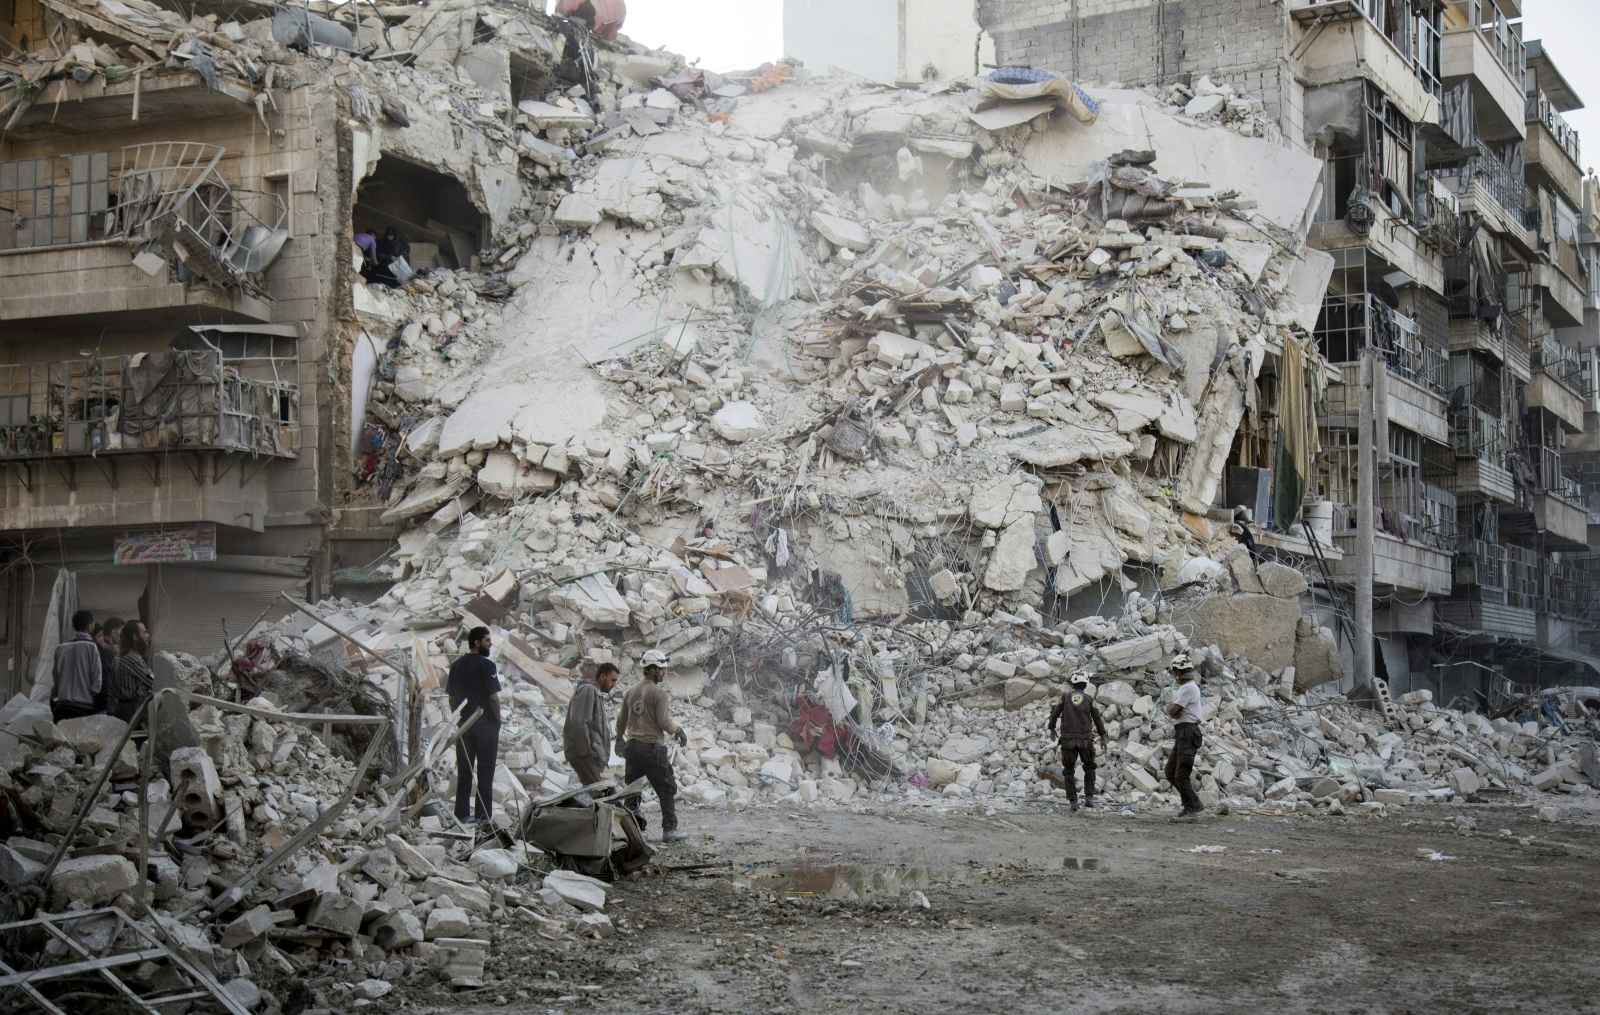 the White Helmets search for victims amid the rubble of a destroyed building